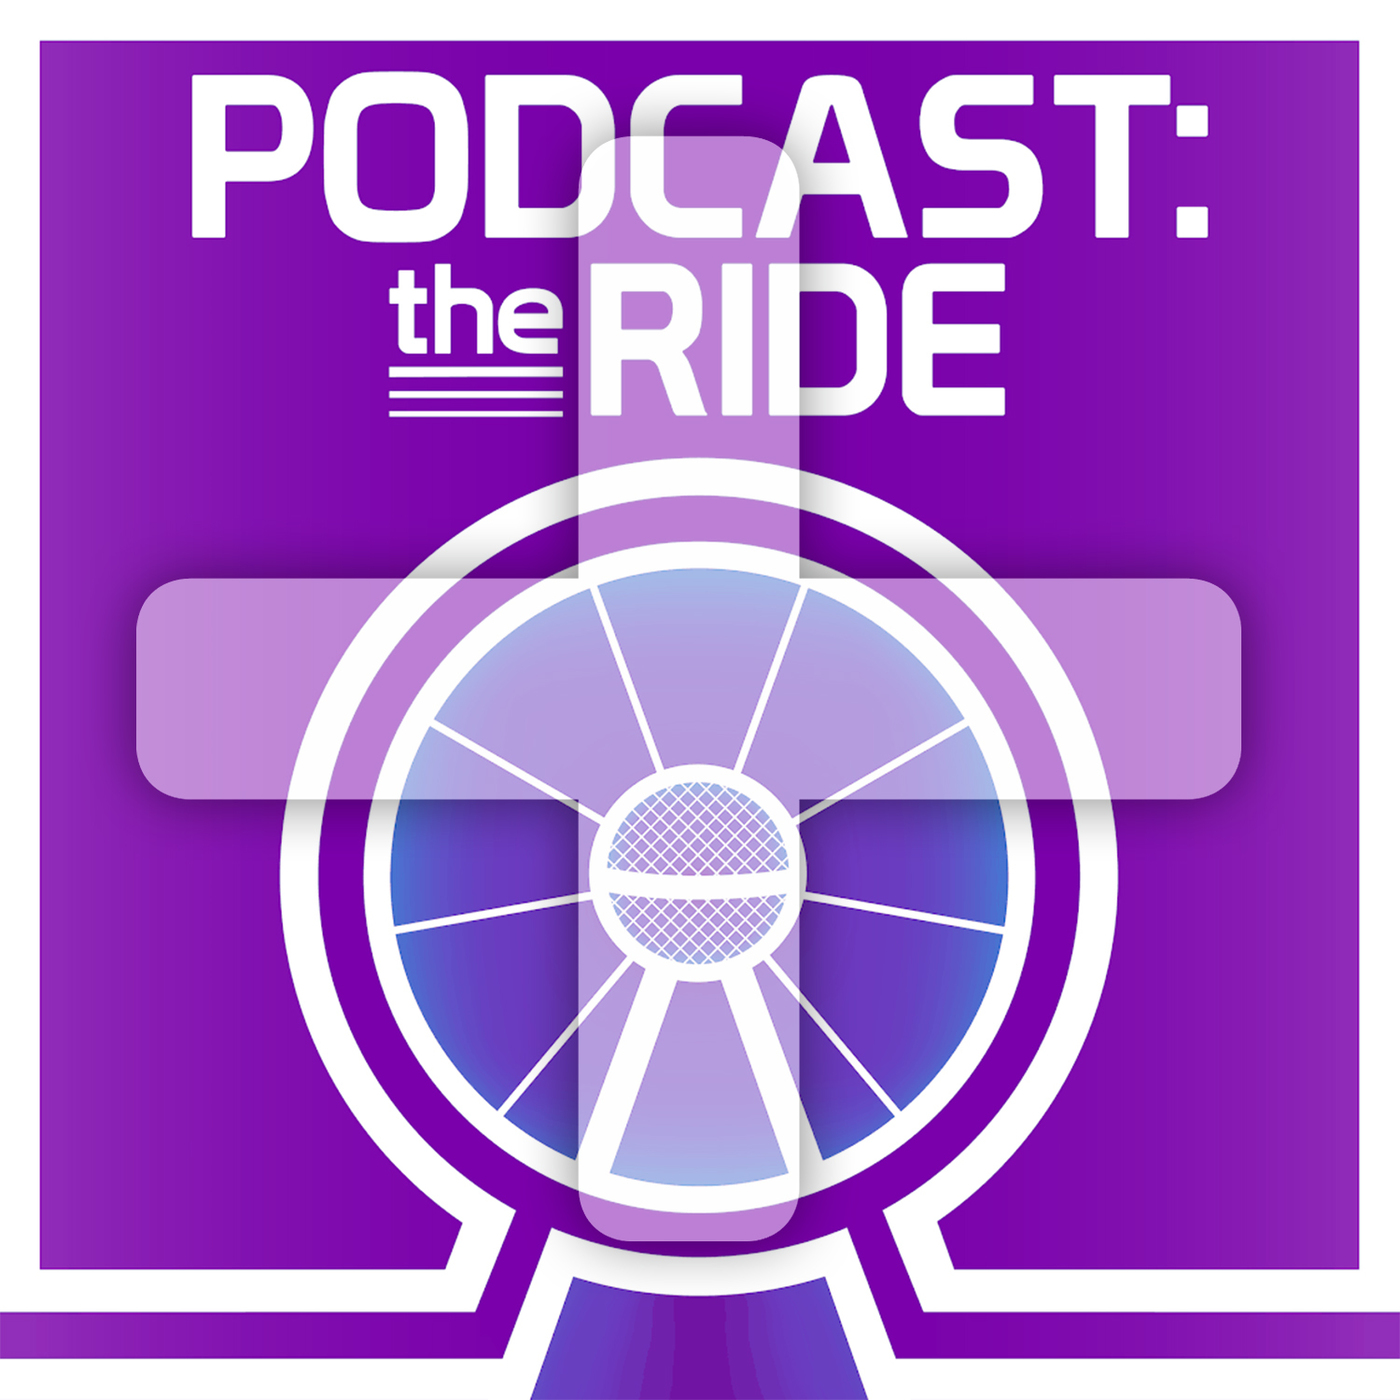 Podcast: The Ride PLUS podcast tile